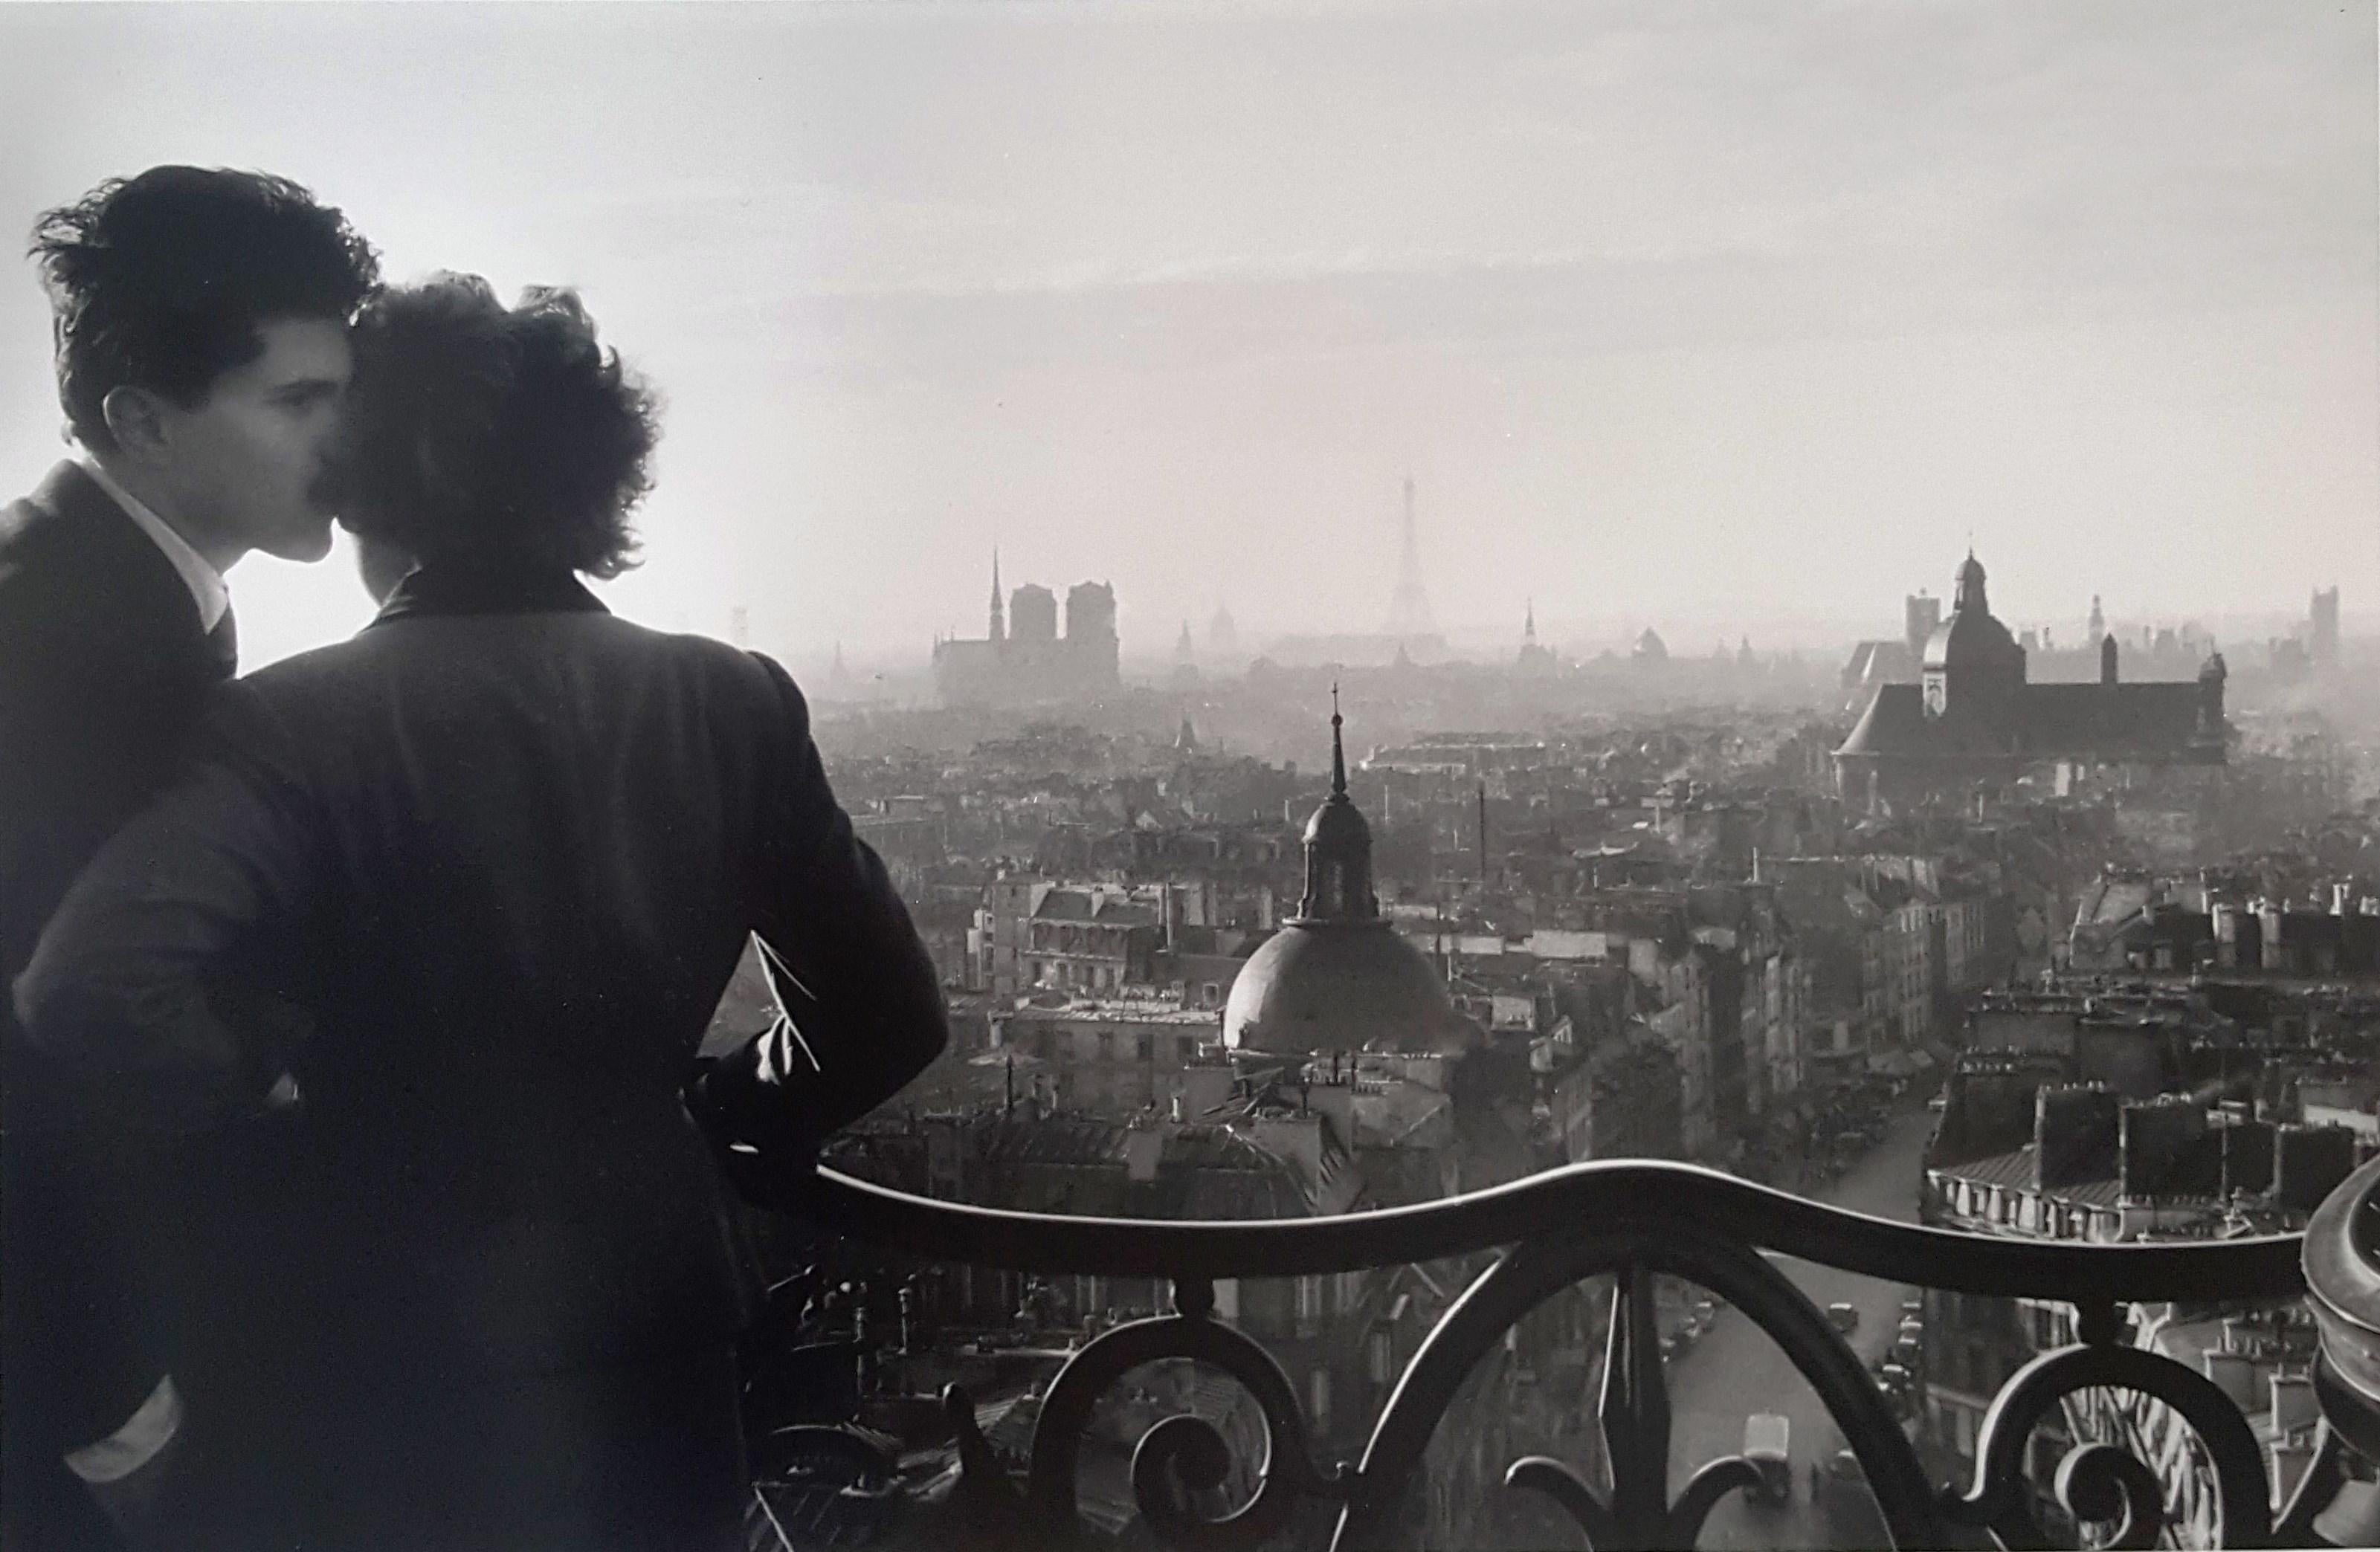 The Lovers of the Bastille - Willy Ronis, 20th Century, Humanist Photographer